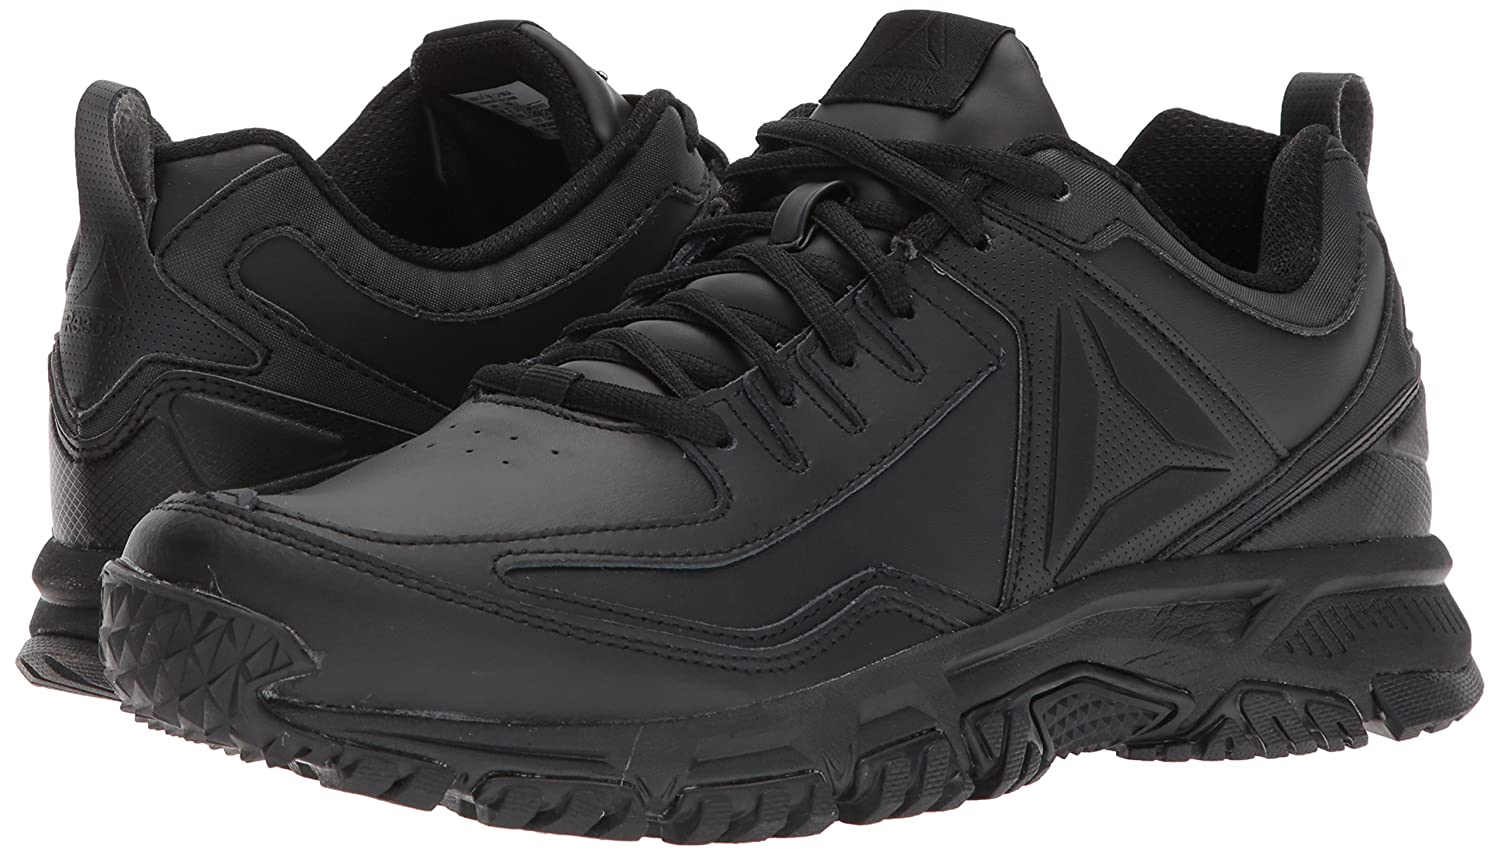 62892d4a67 Reebok Men's Ridgerider Leather Sneaker